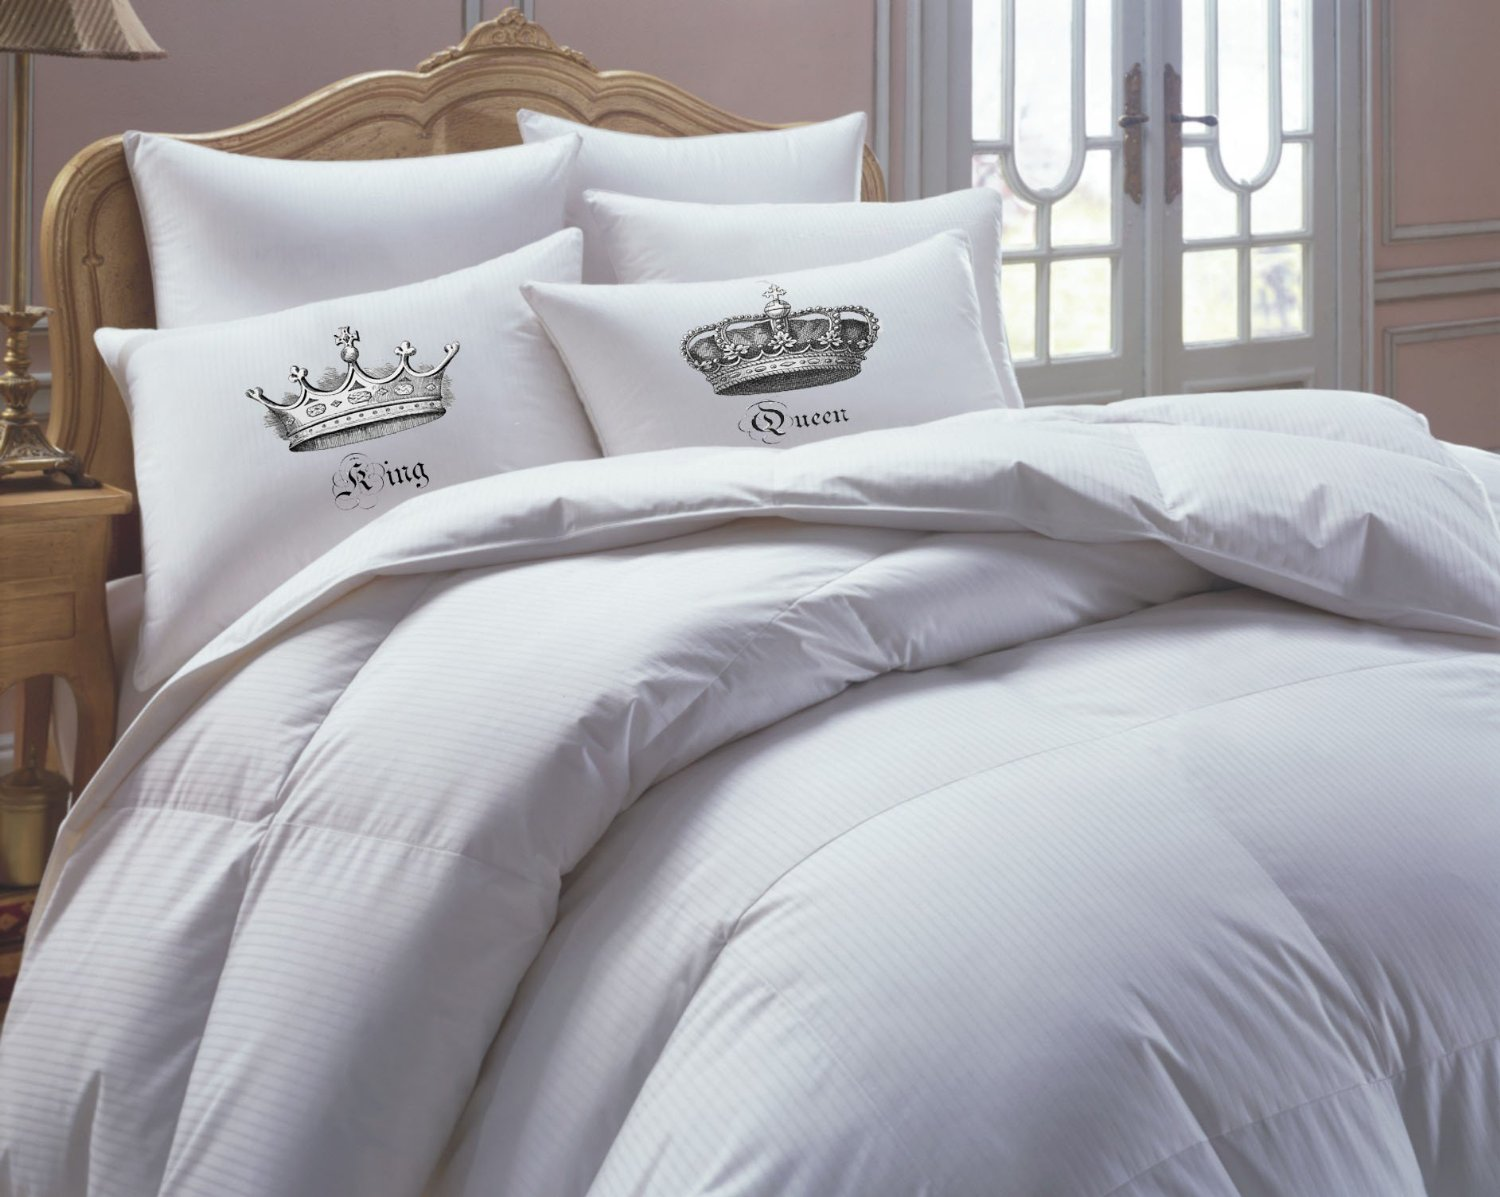 Valentine's gift, couples gift, his hers pillowcase set, couples pillowcase set, king and queen pillowcase set